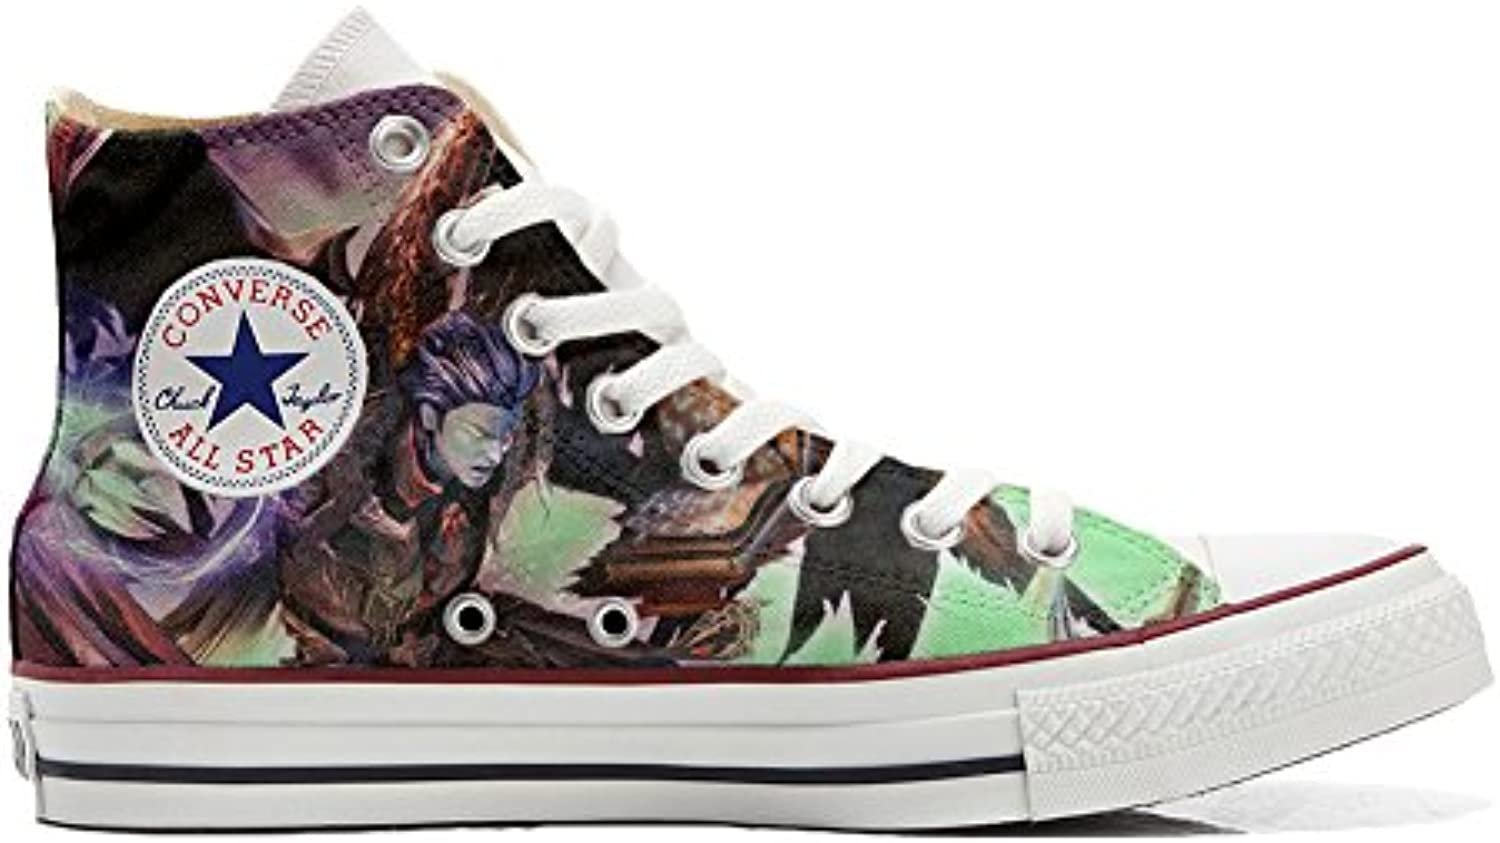 Converse All Star Hi Customized personalisierte Schuhe (Handwerk Schuhe) Demon style